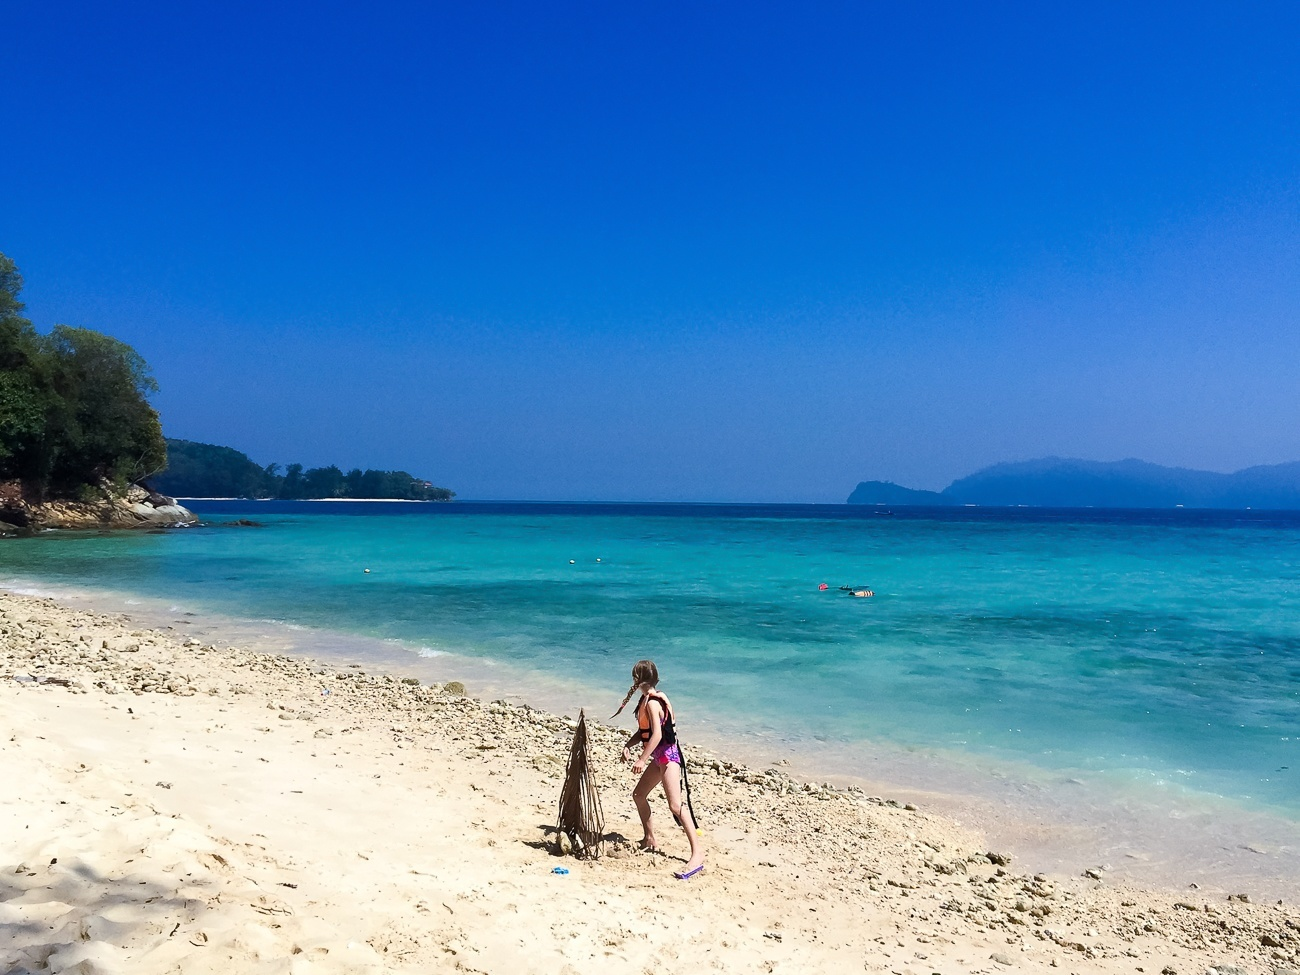 Kids will love the beach and tropical fish in the waters of Mamutik Island, Kota Kinabalu